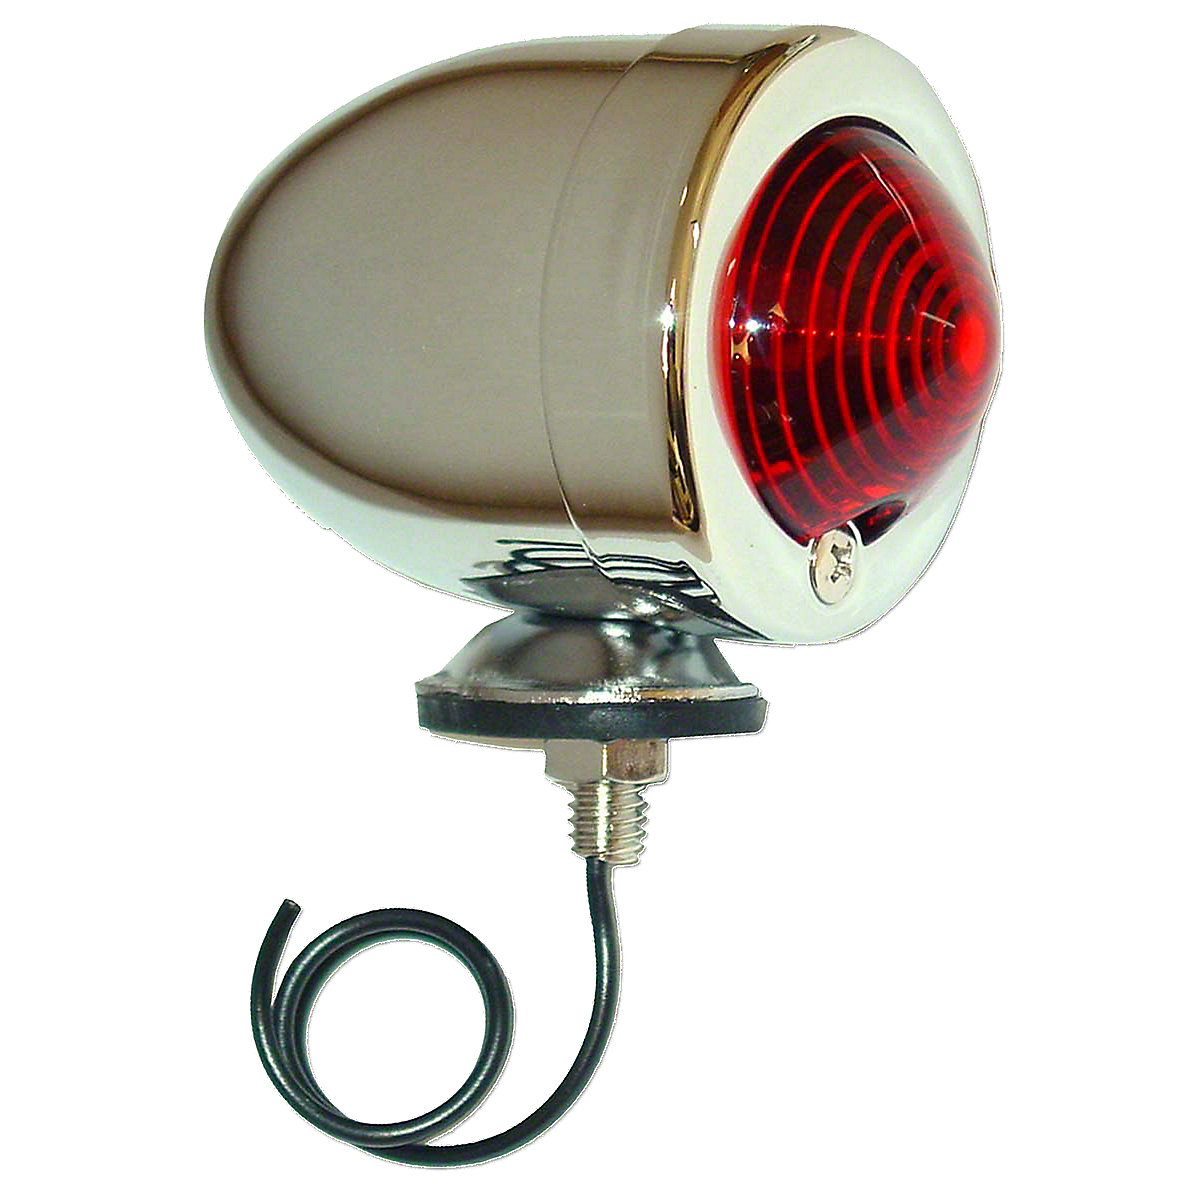 12 Volt Bullet Style Tail Light For Allis Chalmers: B, C, CA, G, WD, WD45, D10, D12, D14.